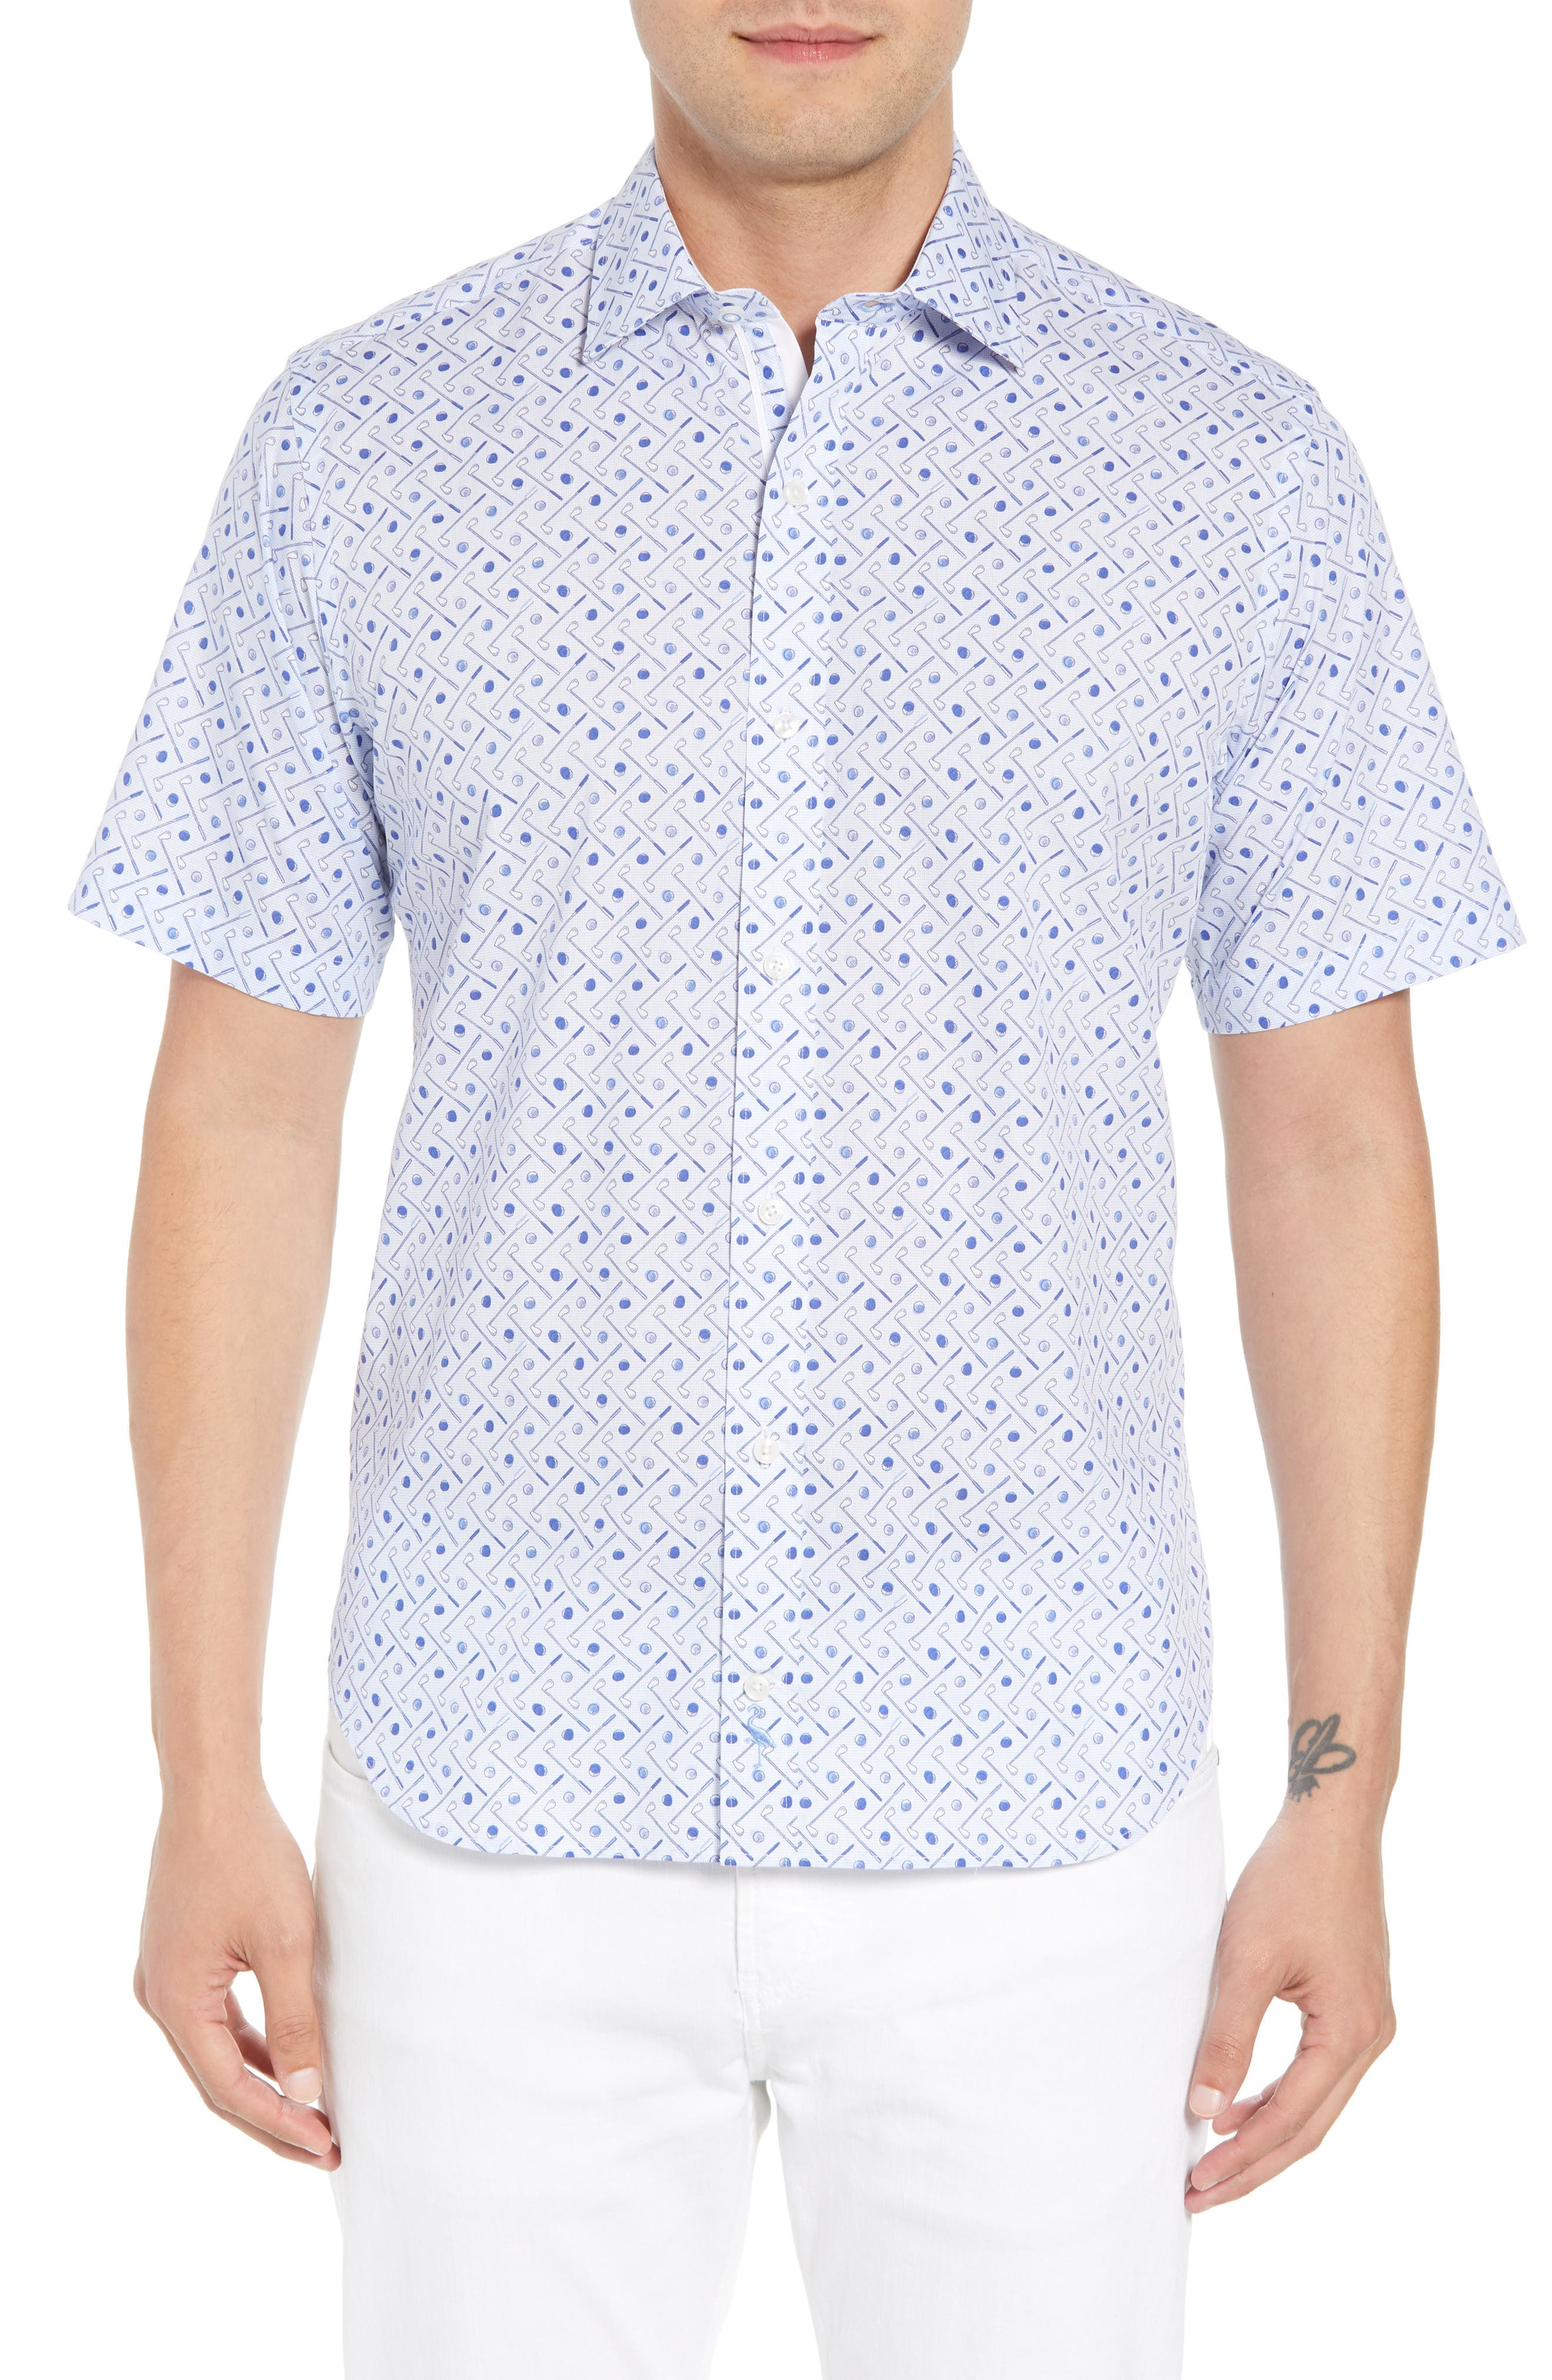 Ash Regular Fit Golf Print Sport Shirt,                             Main thumbnail 1, color,                             Light Blue